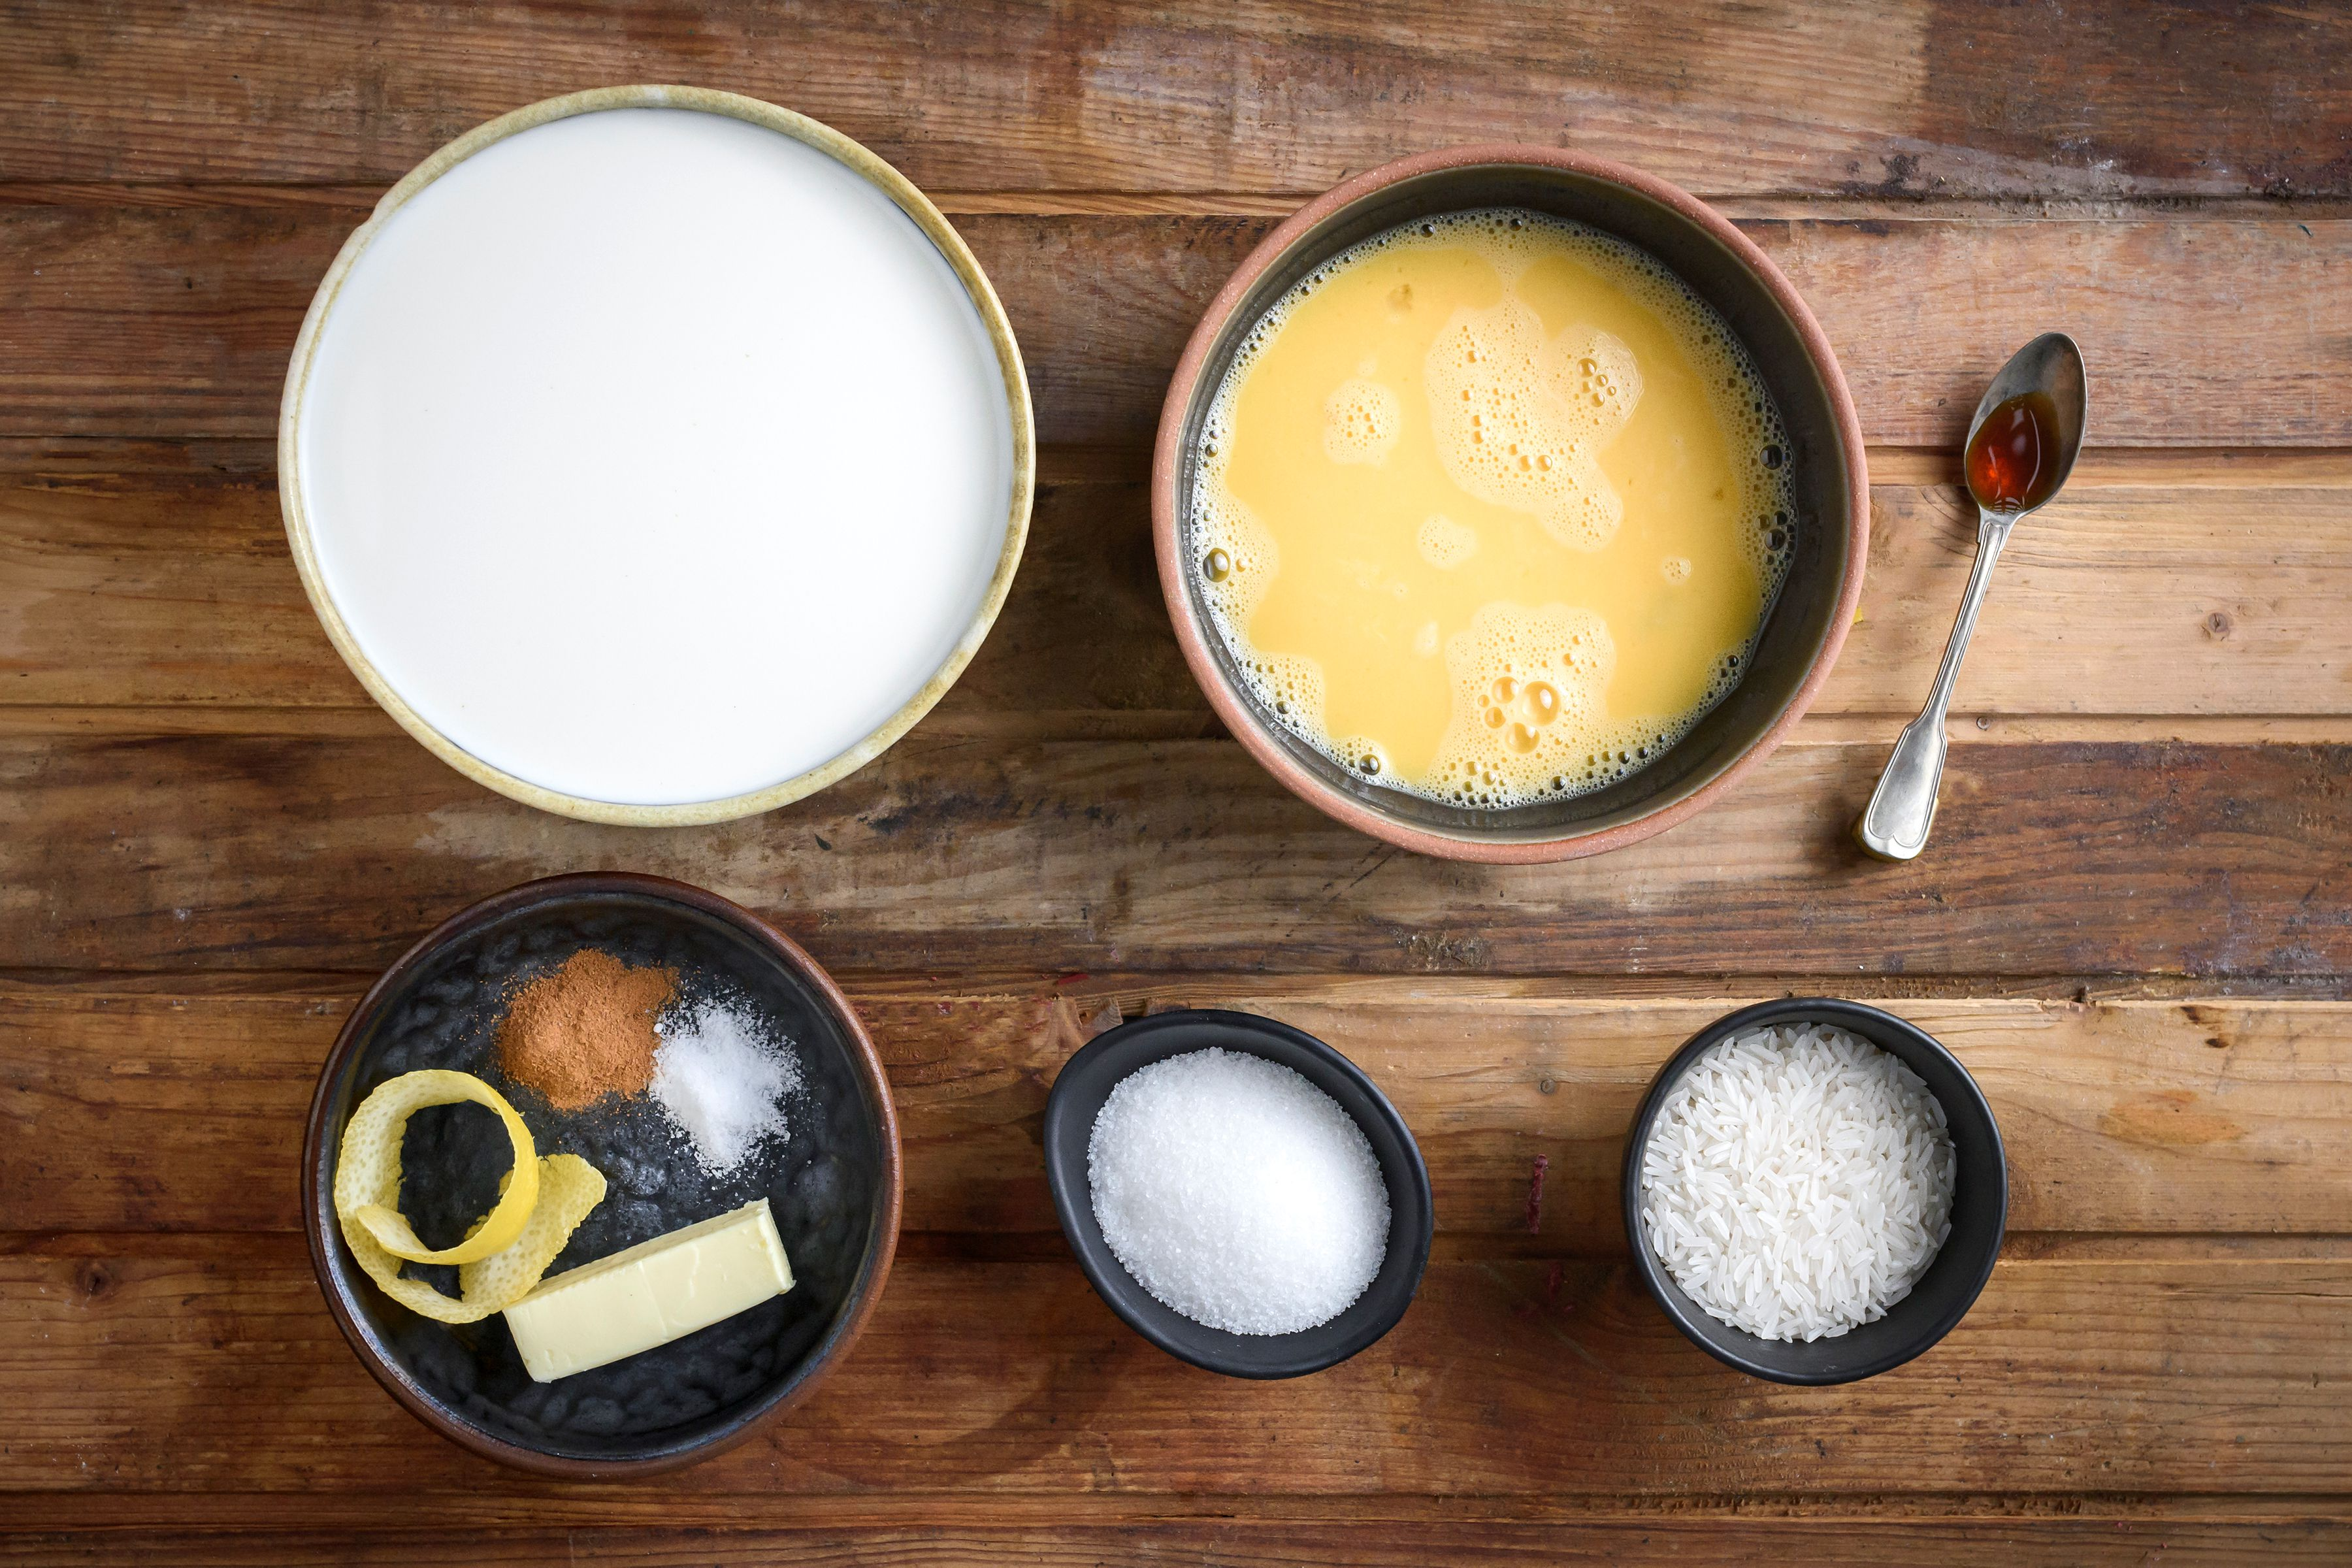 Ingredients for Greek rice pudding